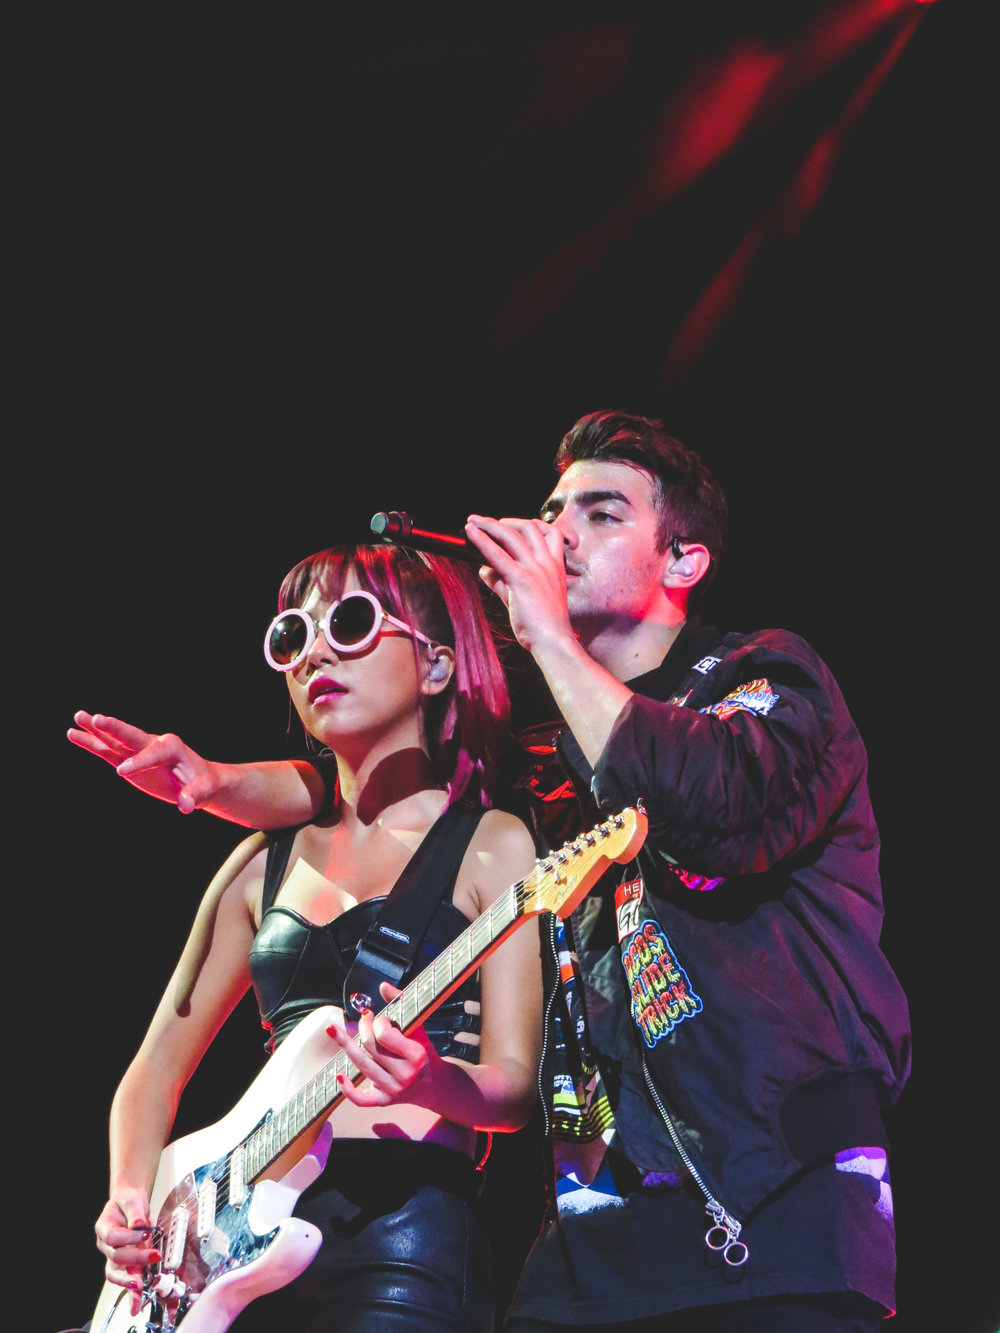 Joe Jonas & Jin Joo of DNCE